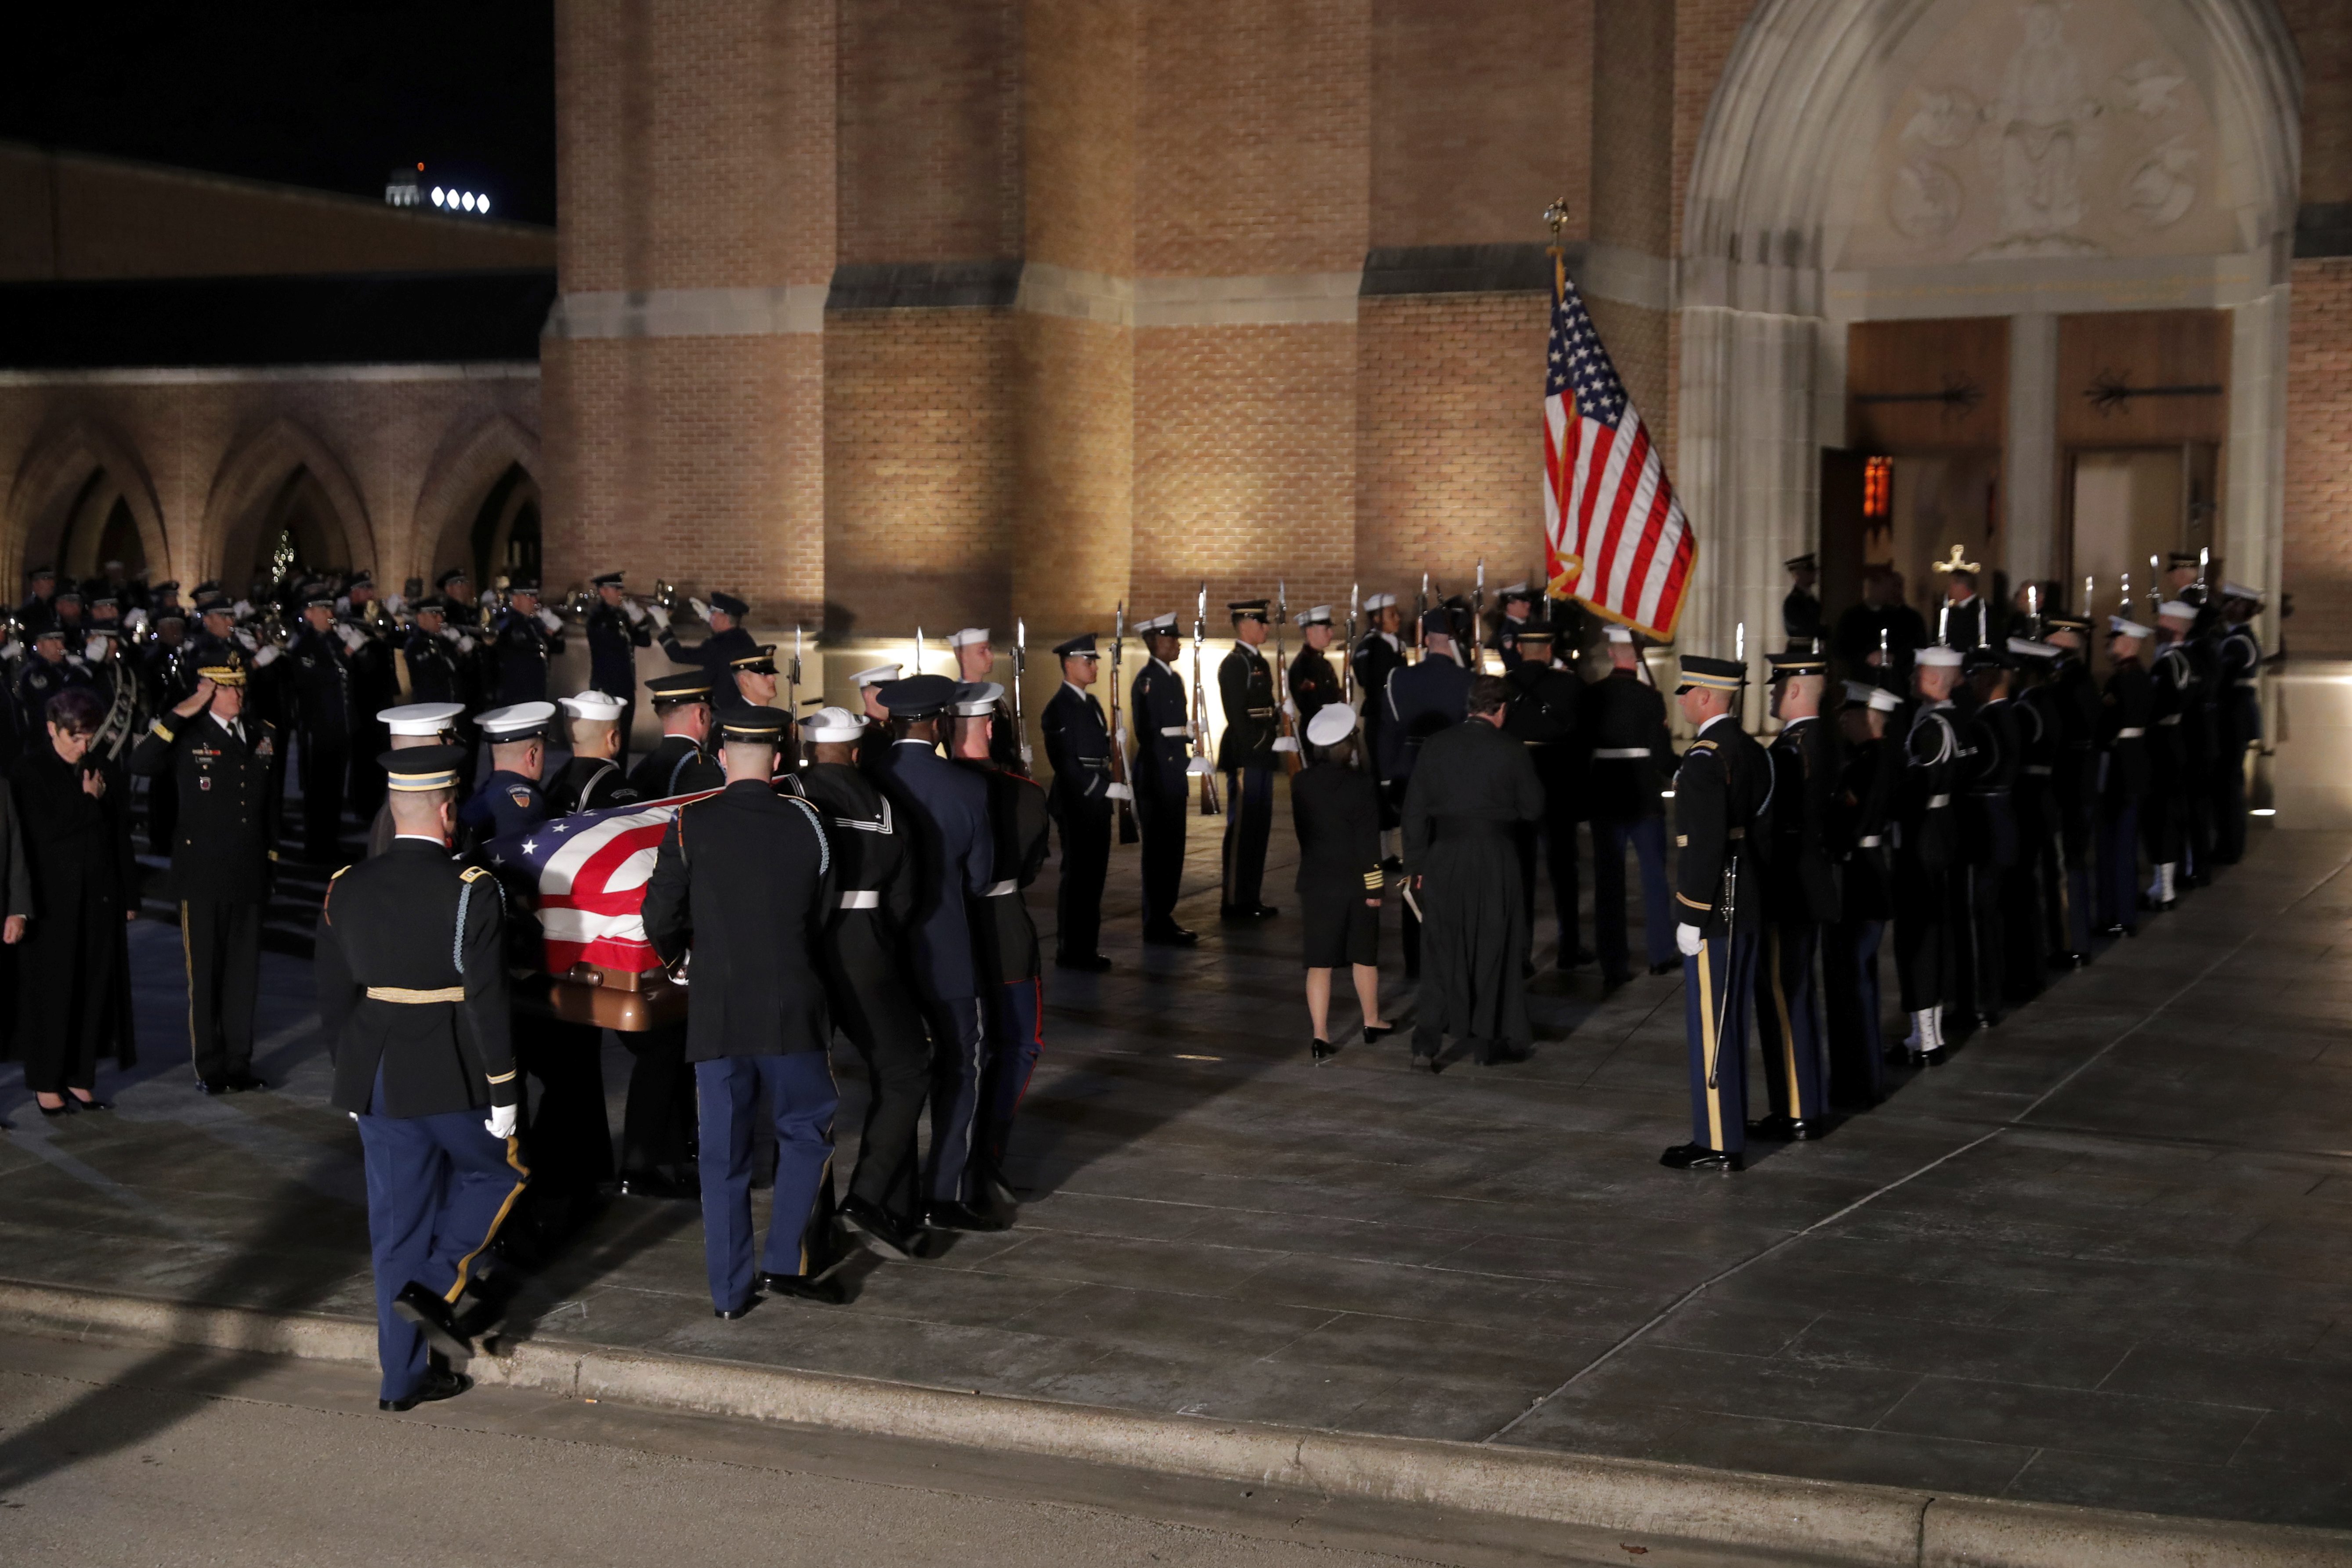 The flag-draped casket of former President George H.W. Bush is carried by a joint services military honor guard into St. Martin's Episcopal Church Wednesday, Dec. 5, 2018, in Houston. (AP Photo/Gerald Herbert)